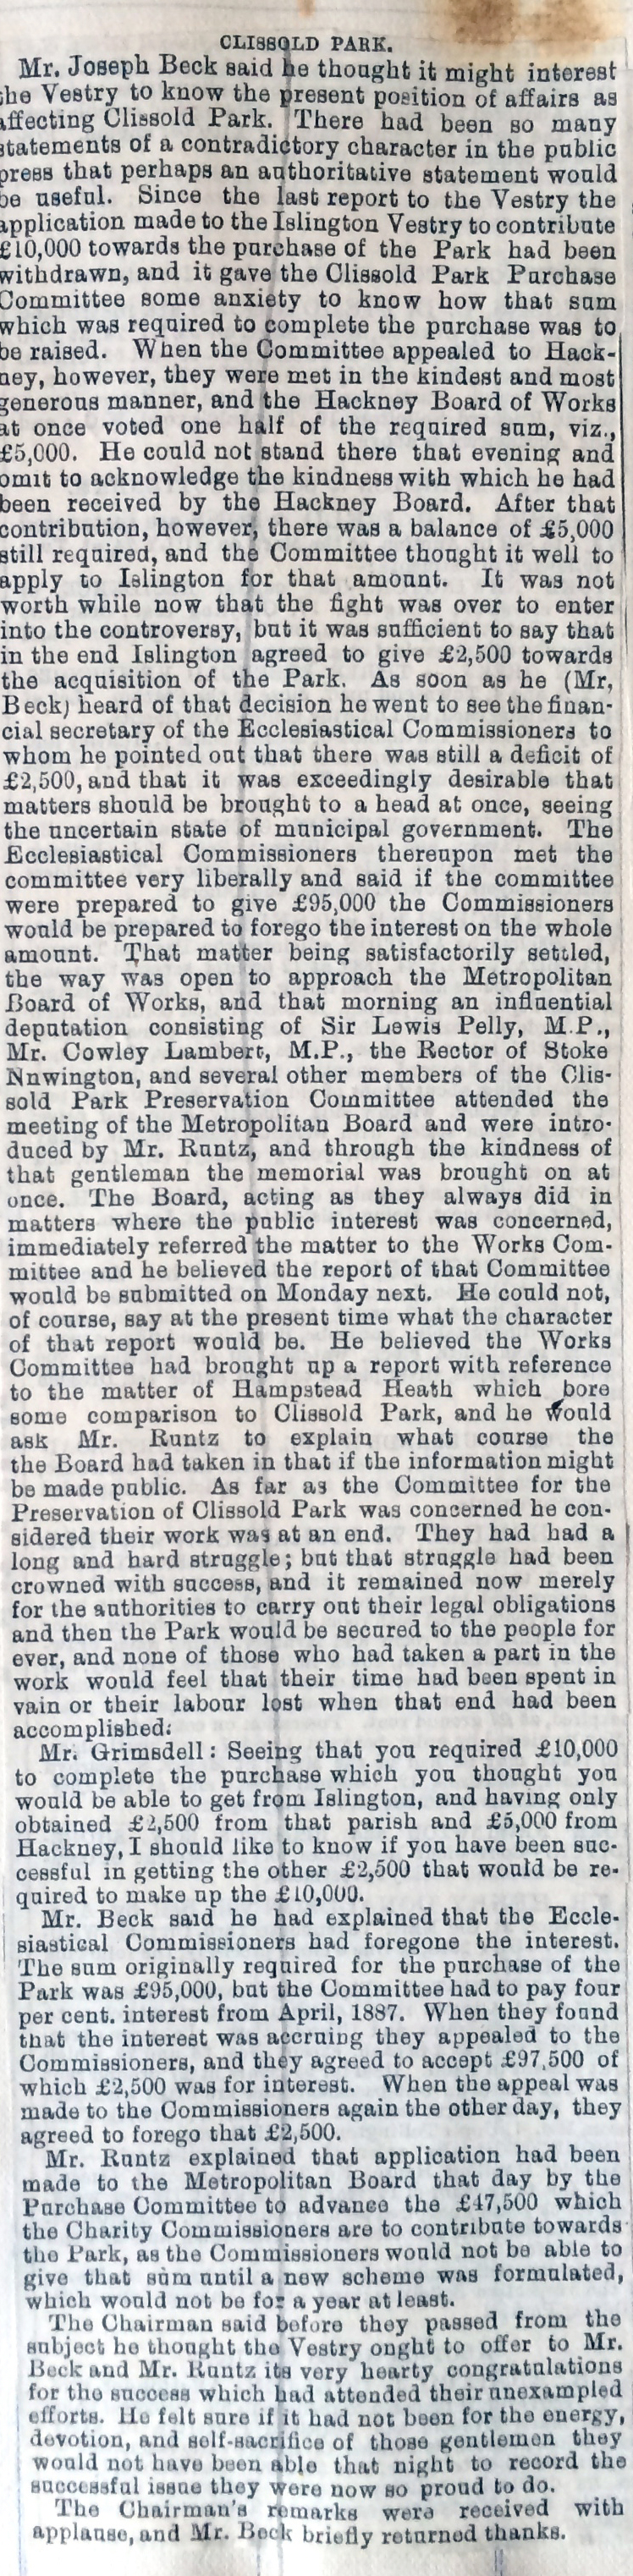 July_1888 NEWS CLIPPING 1.JPG